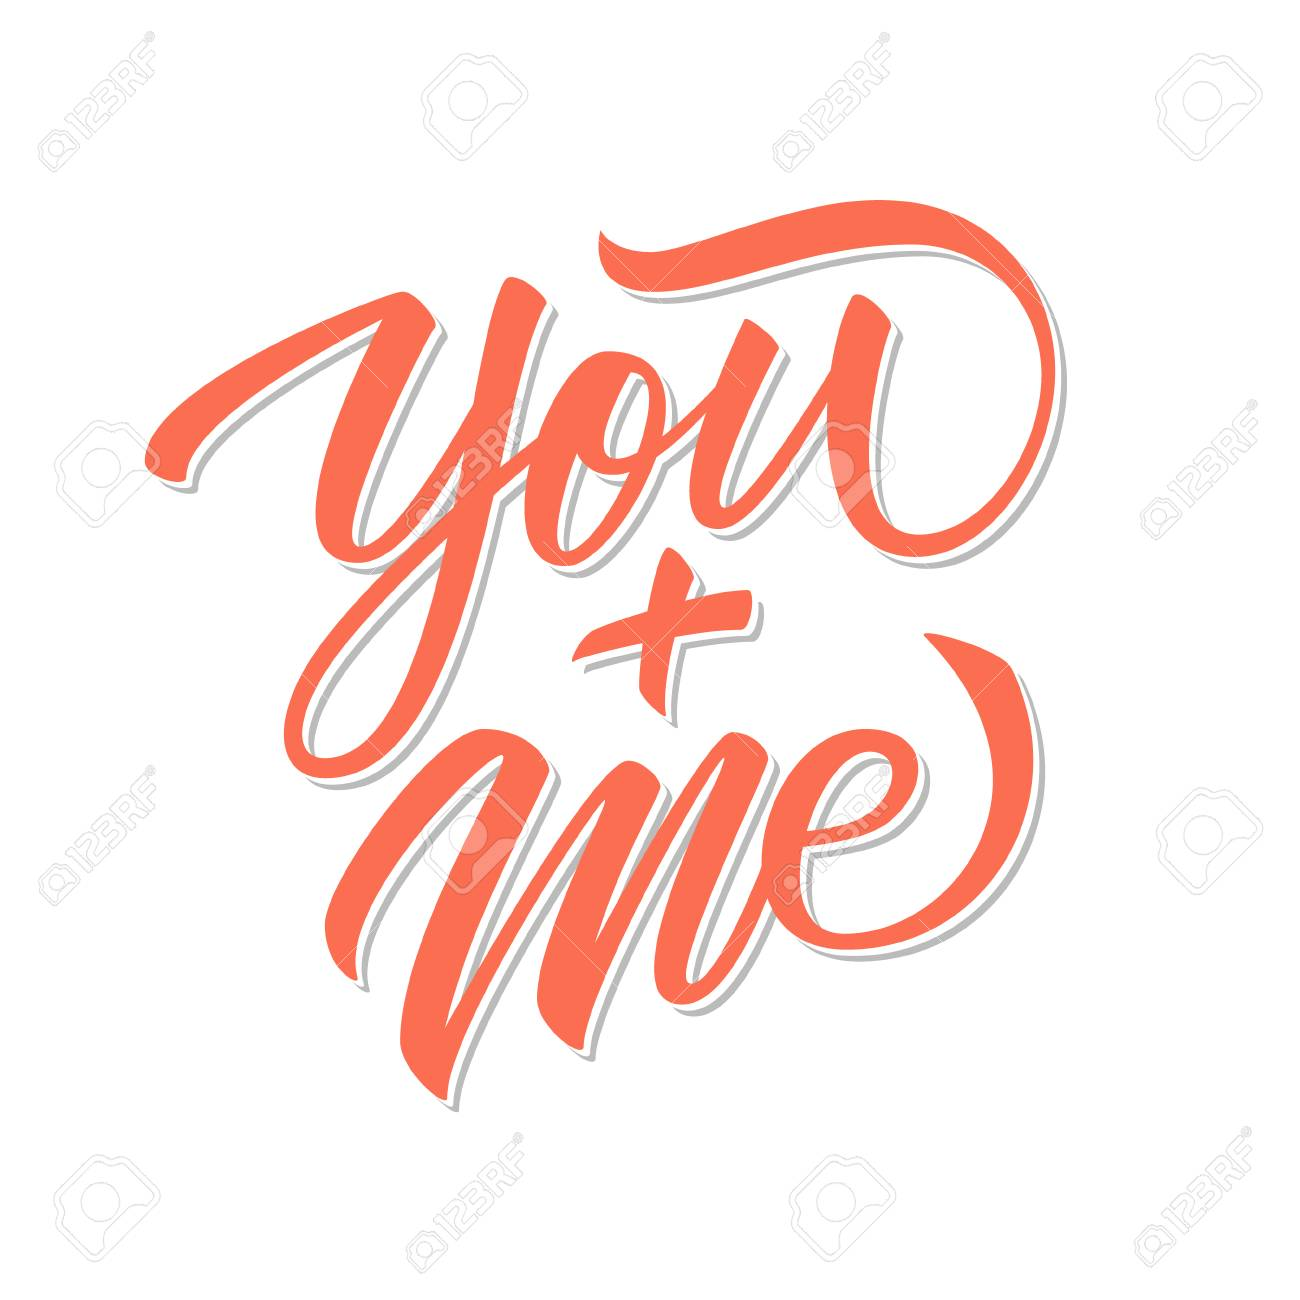 You and me calligraphic lettering text design creative typography you and me calligraphic lettering text design creative typography for romantic greetings vector illustration kristyandbryce Choice Image